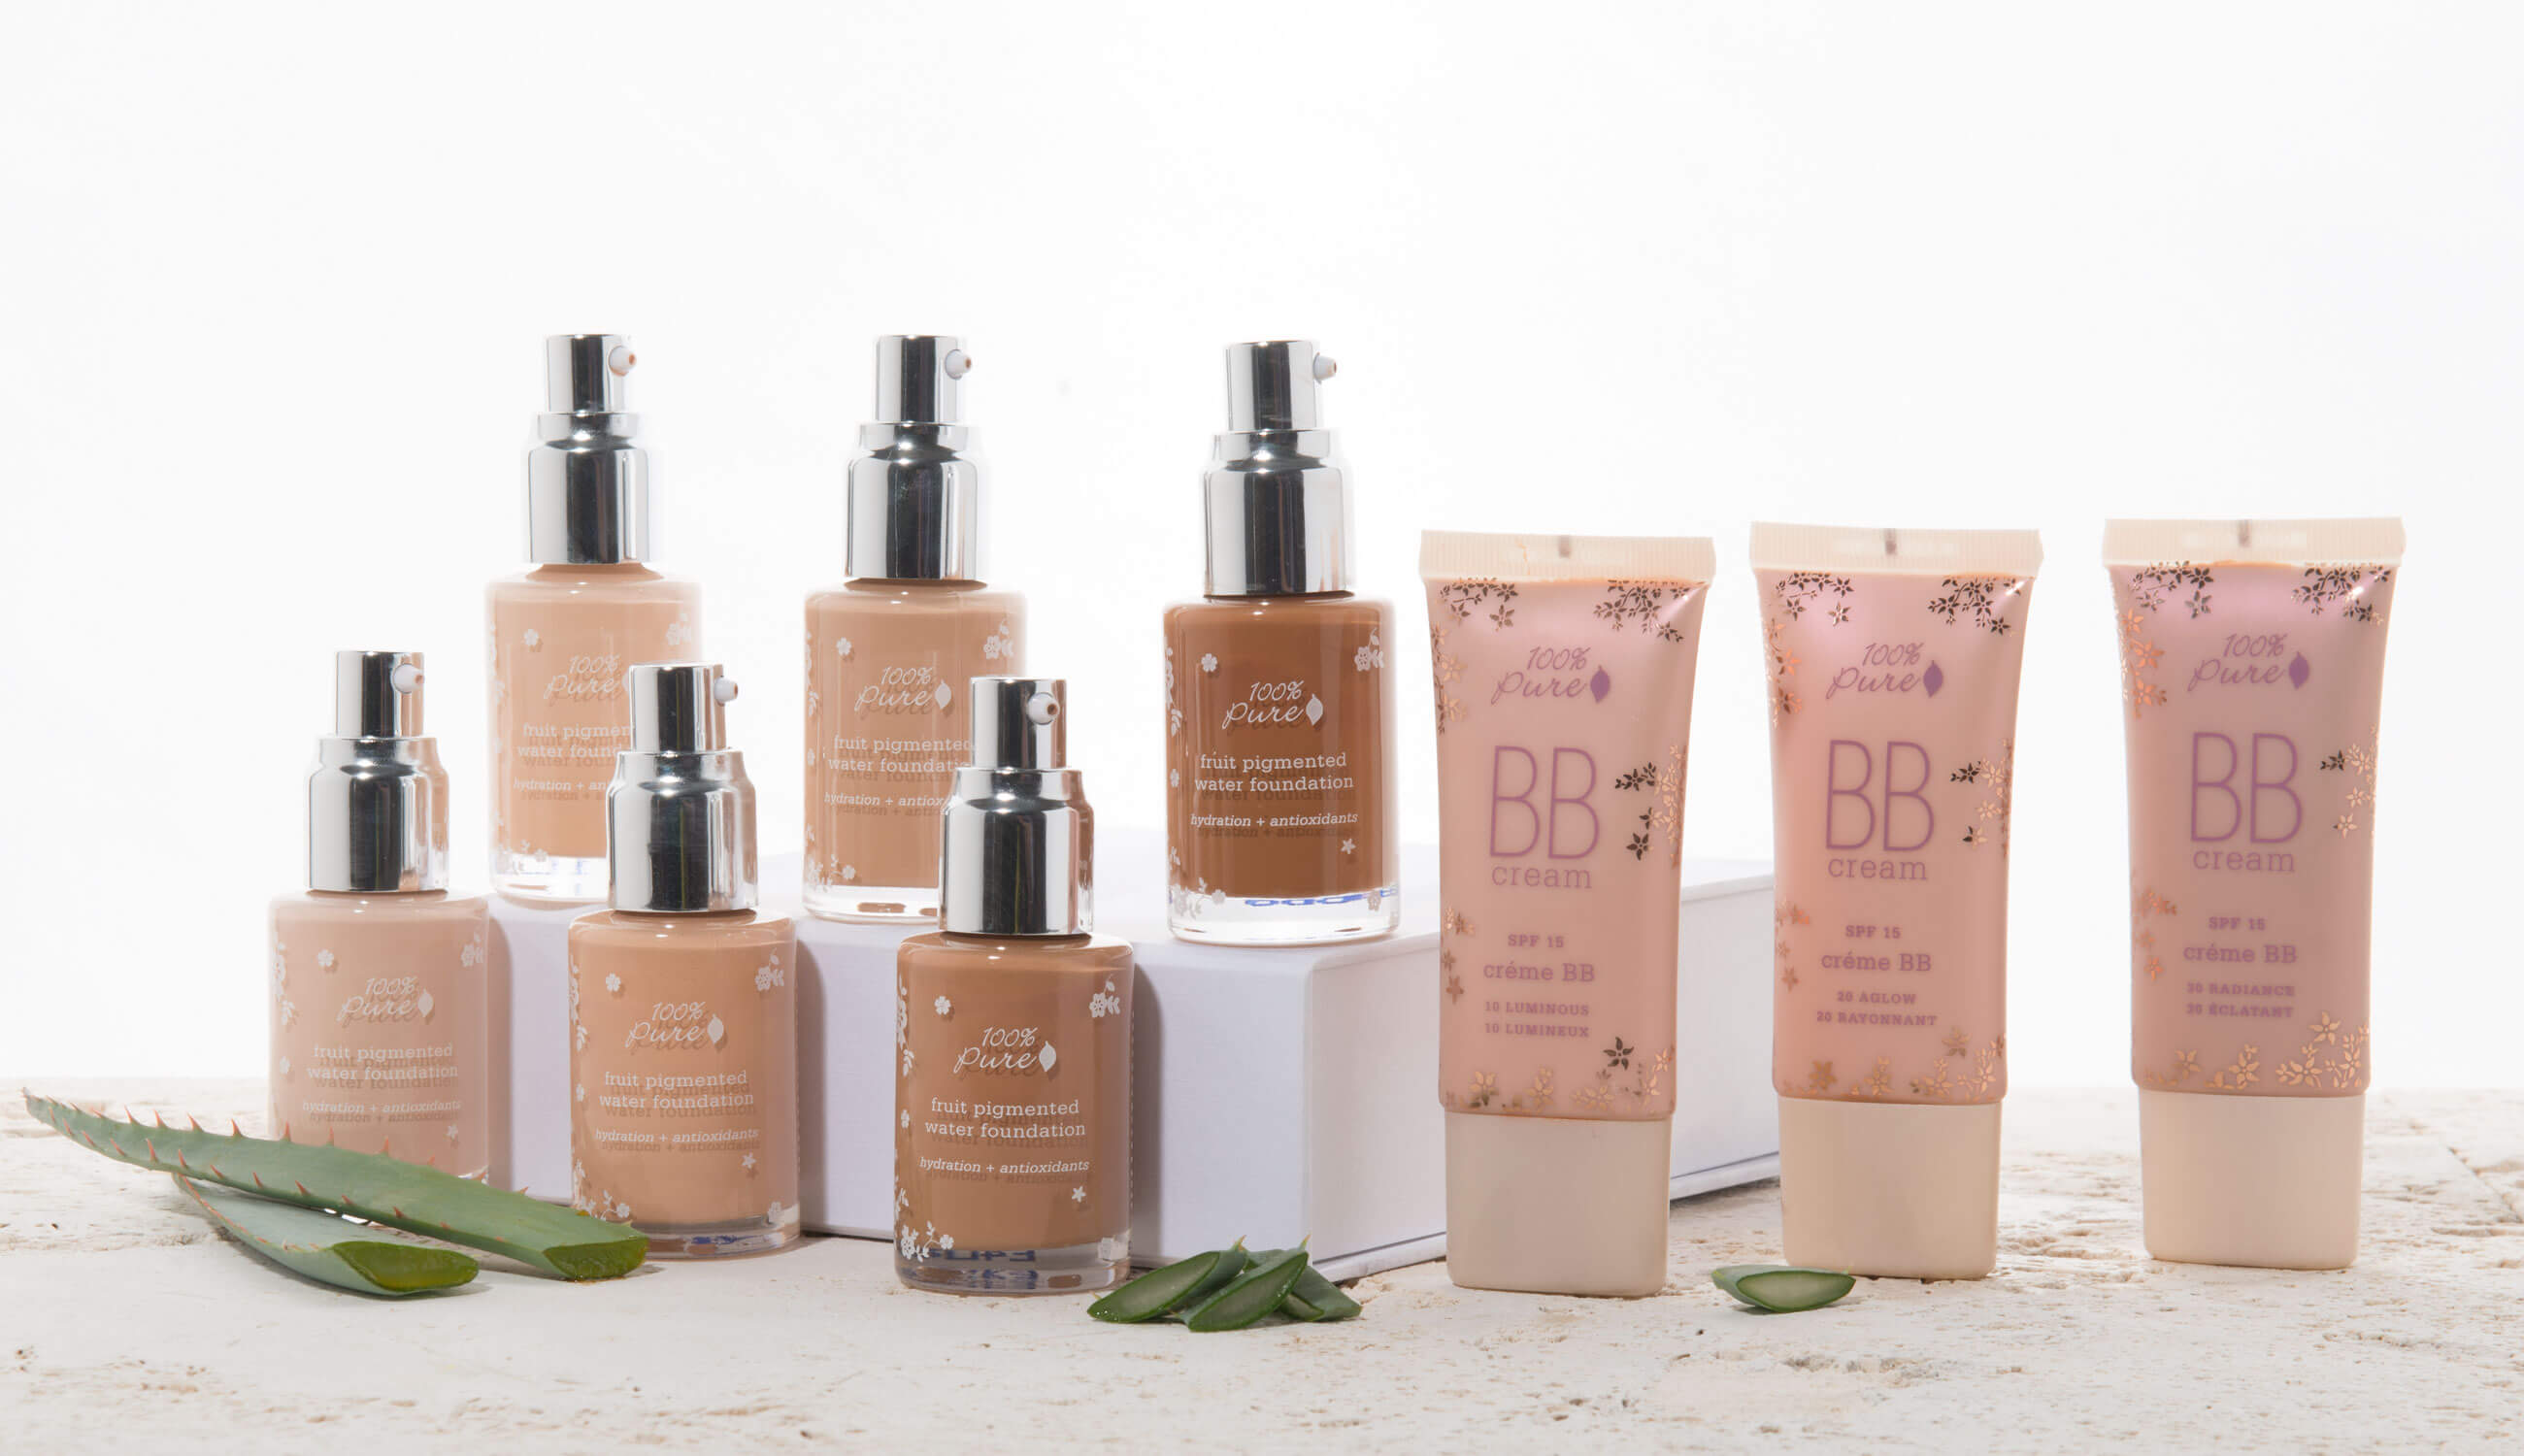 Fruit Pigmented Water Foundation & BB Cream